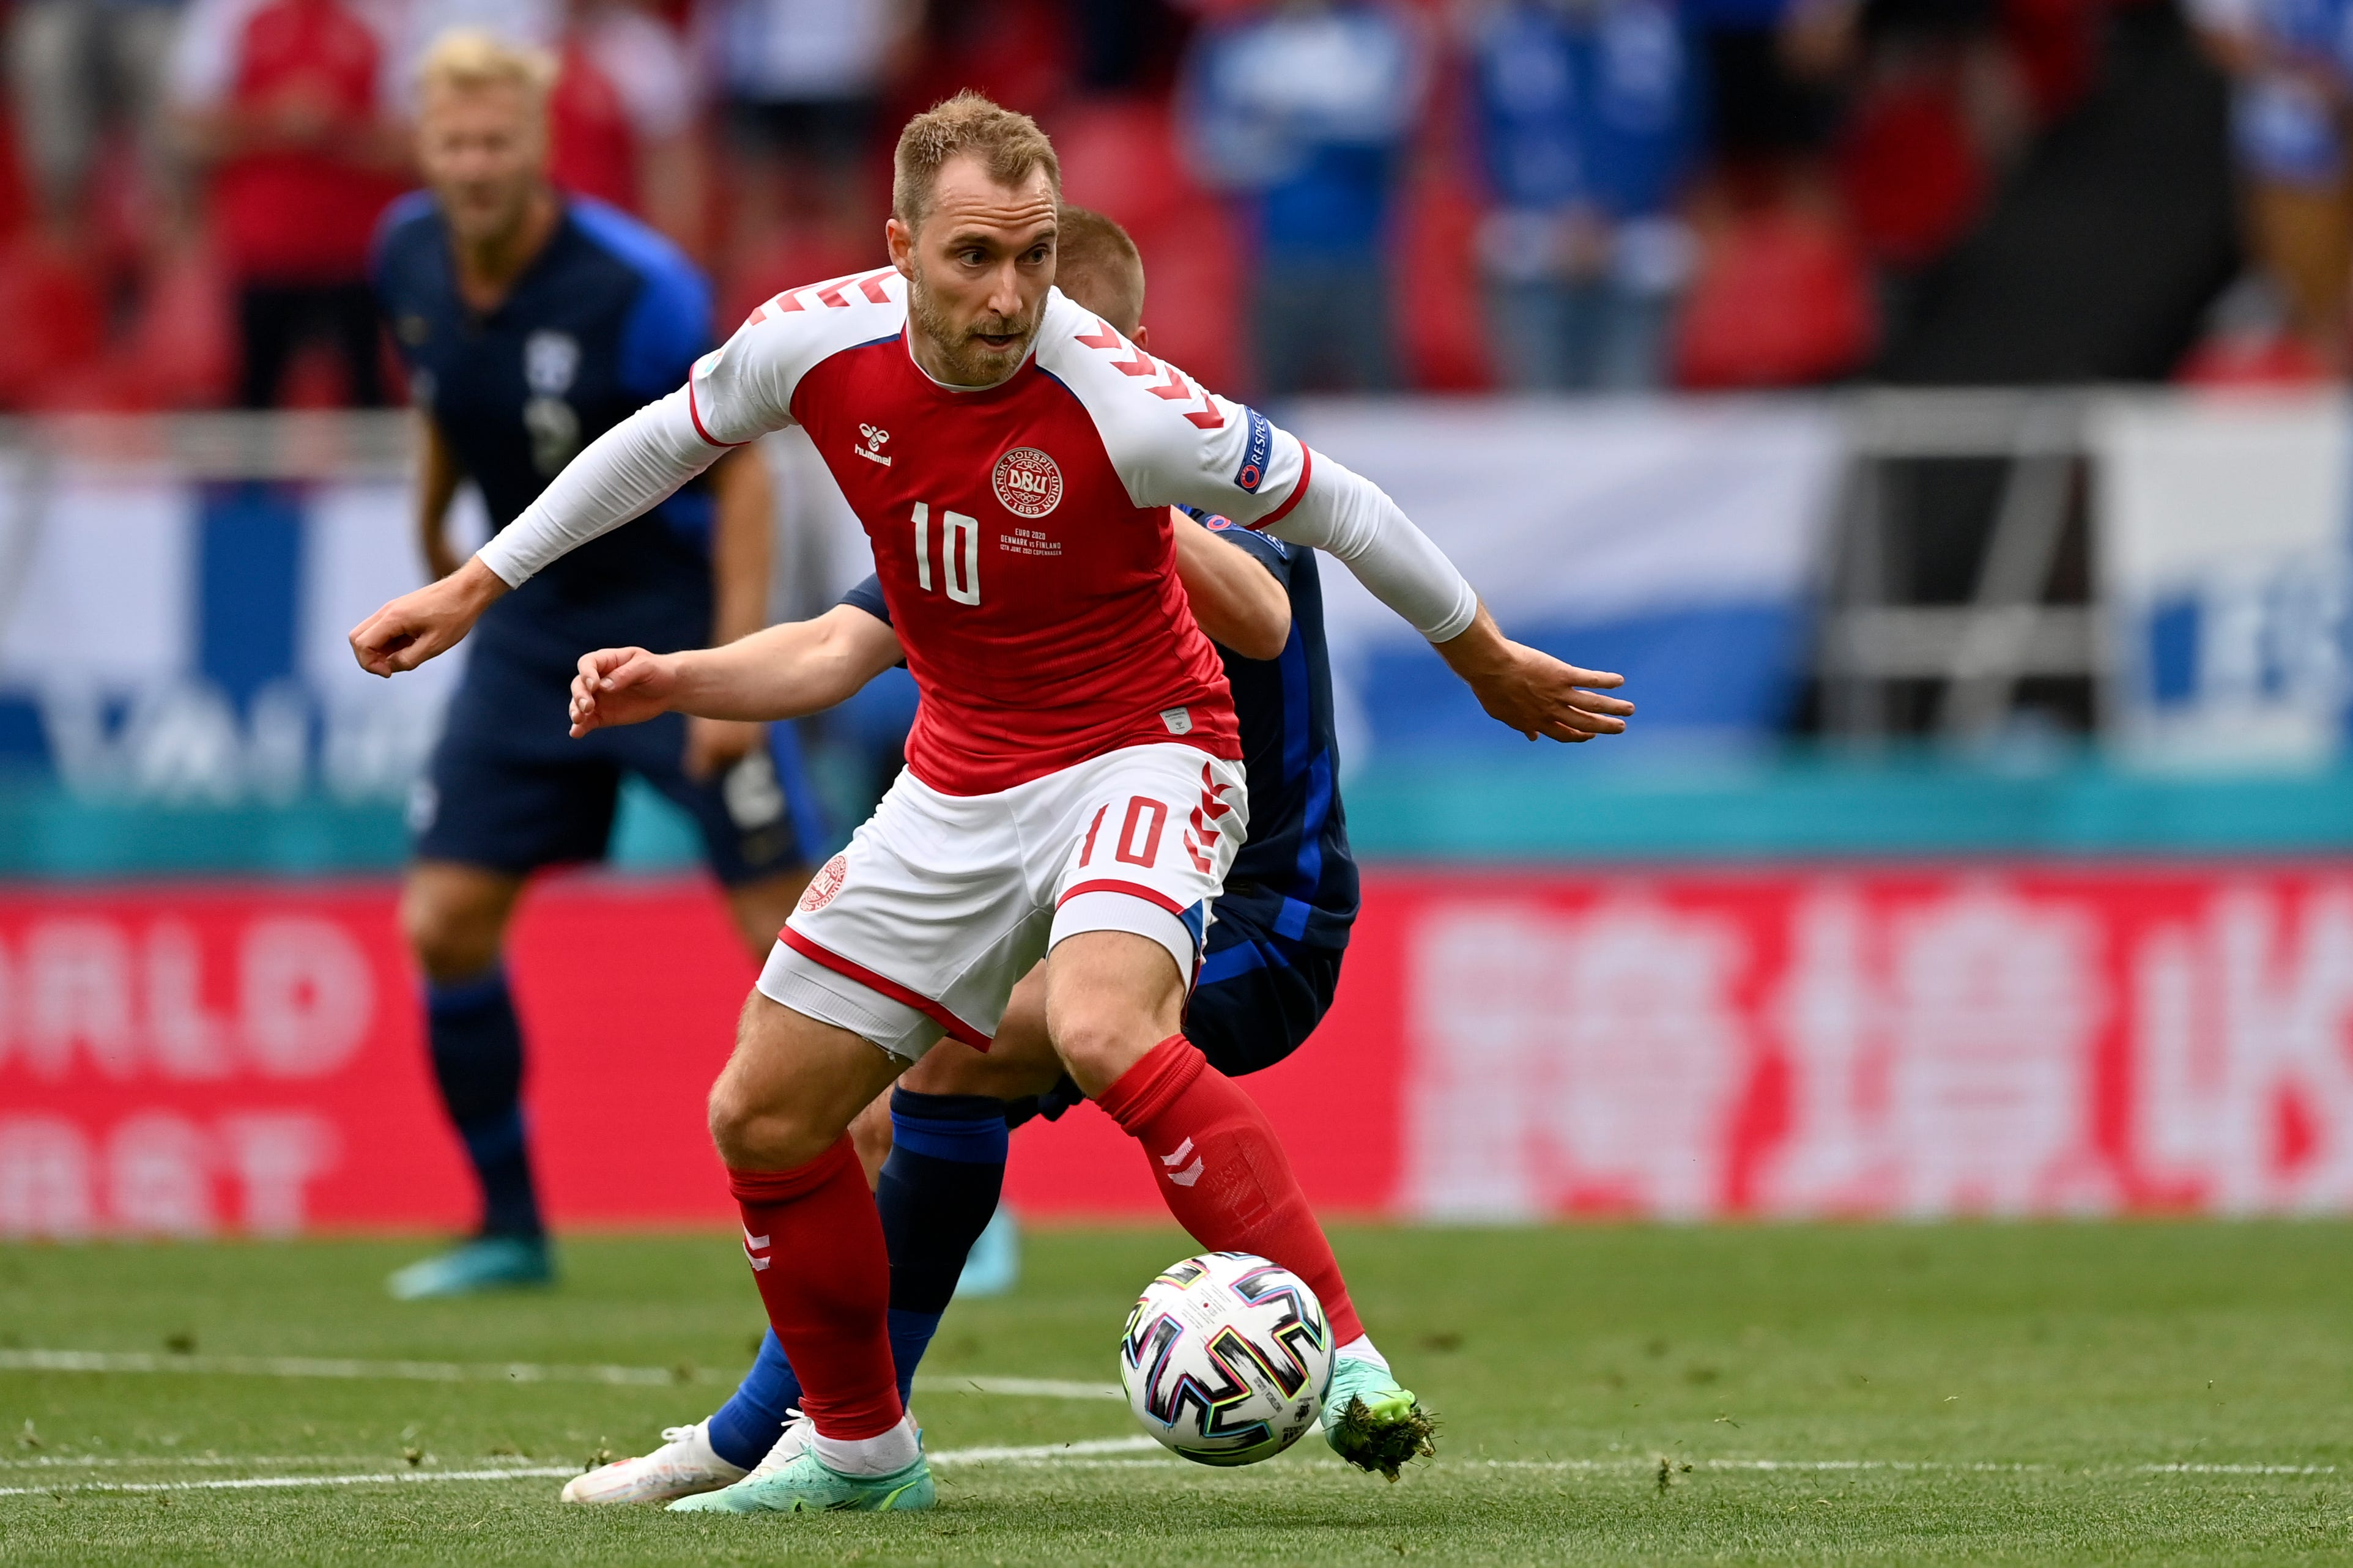 Denmark's Christian Eriksen stable after collapsing in game vs. Finland at Euro 2020